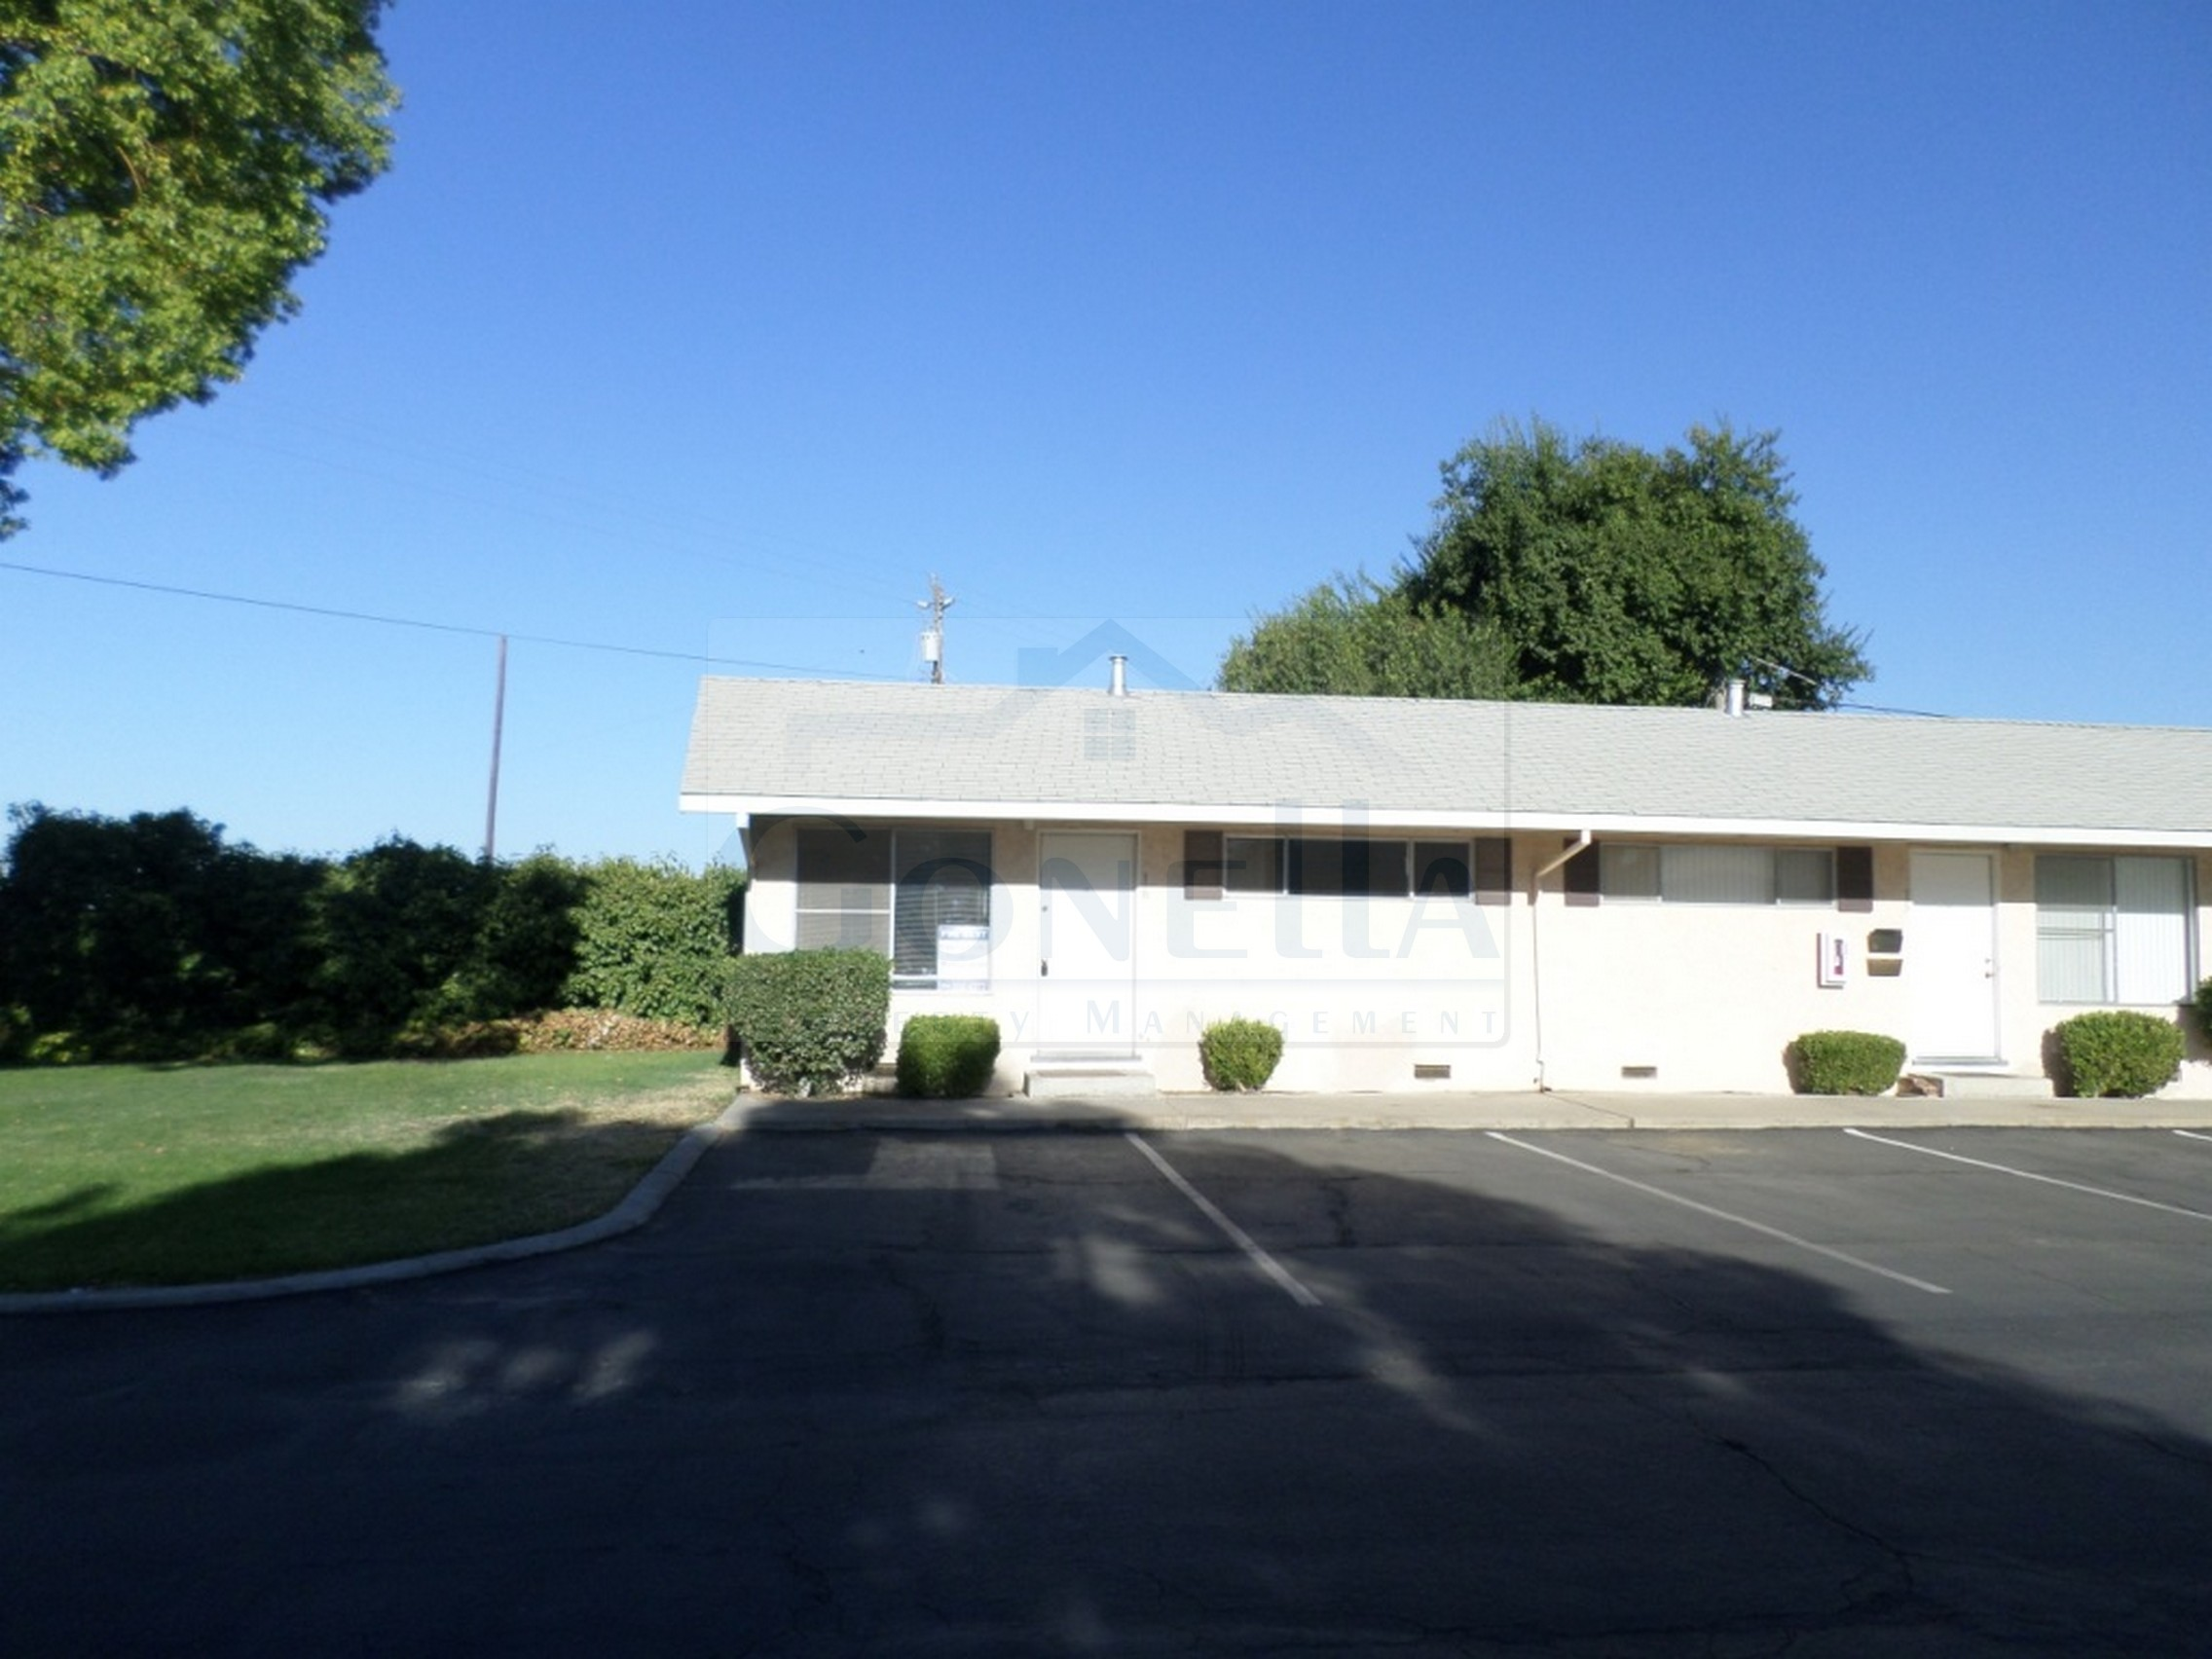 6910 N Santa Fe #16-Winton (W Olive Ave, Santa Fe Dr) One bedroom apartment with living room and dinette. ONSITE LAUNDRY ROOM. NO PETS!   Credit Check required = $20 processing fee per applicant (Payable by cashiers  check or money order) All tenants are required to obtain renters insurance of at least 50K prior to signing lease. FOR MORE INFORMATION   CALL GONELLA PROPERTY MANAGEMENT  209-383-6277  Gonella Property Management DRE#01103054